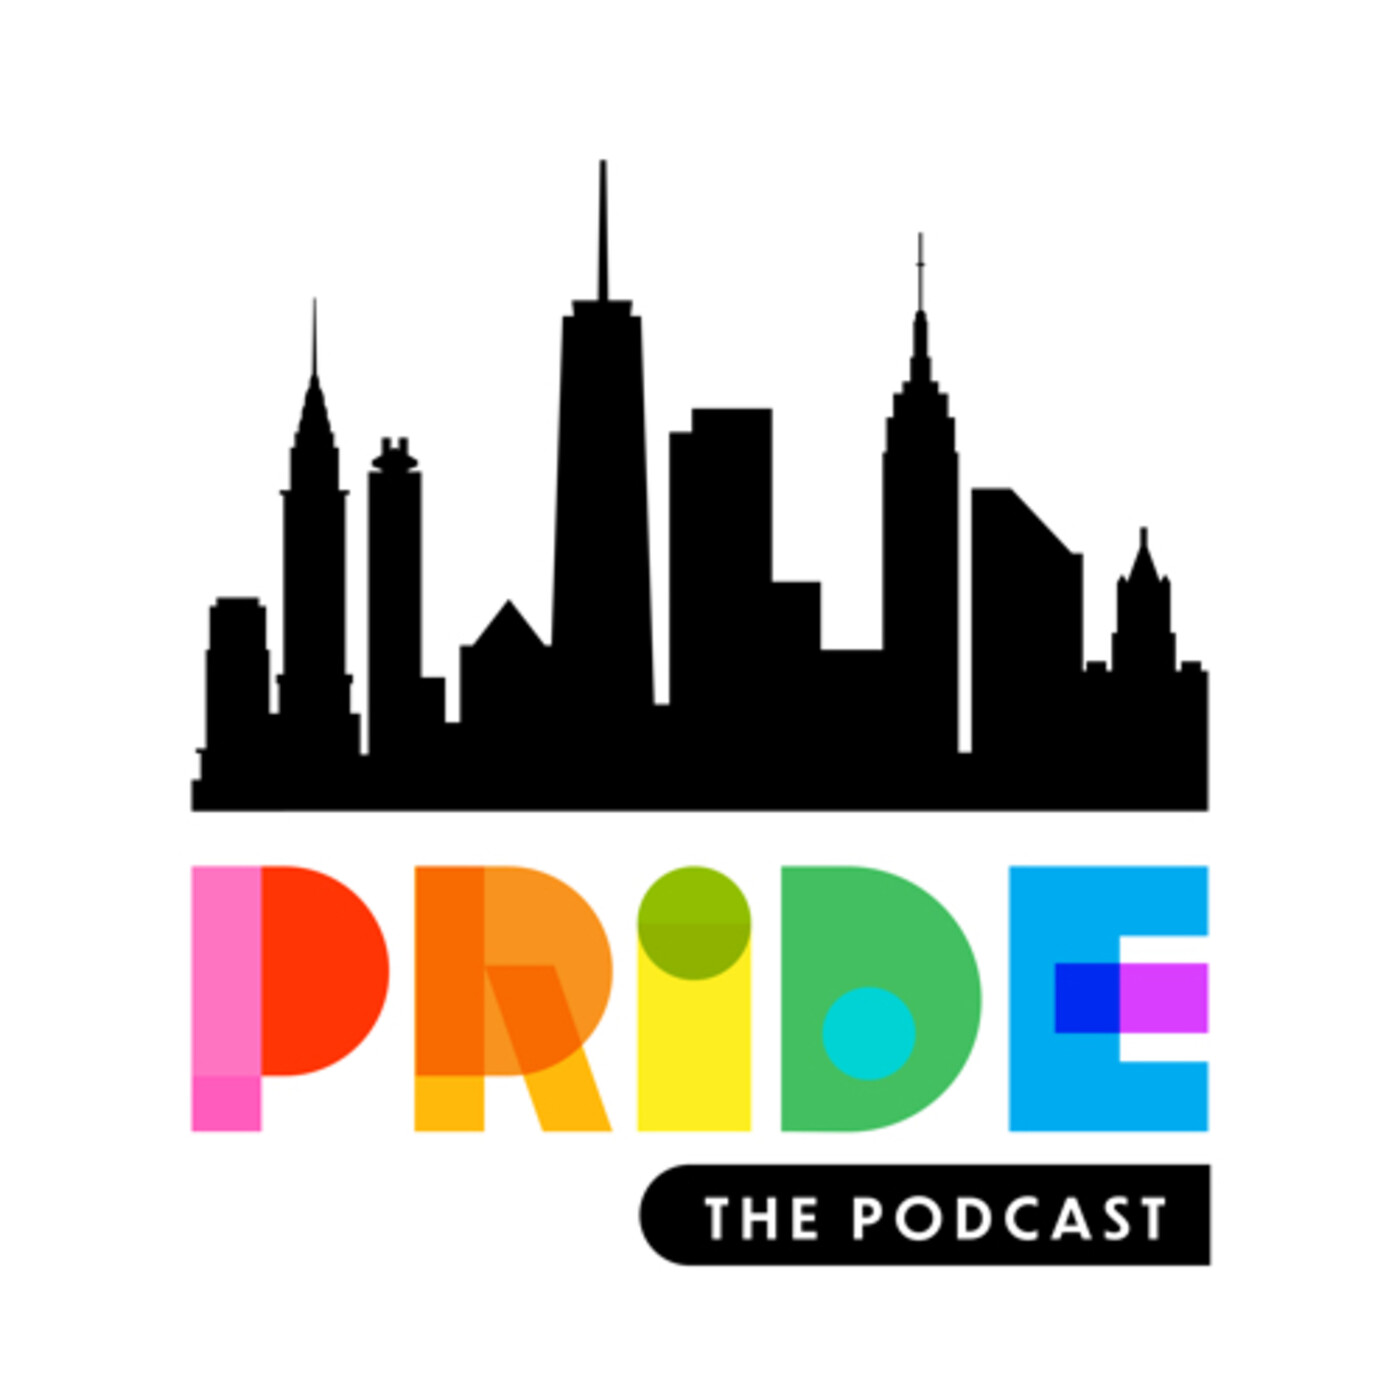 PRIDE: The Podcast Episode 17 ft. Marti Gould Cummings